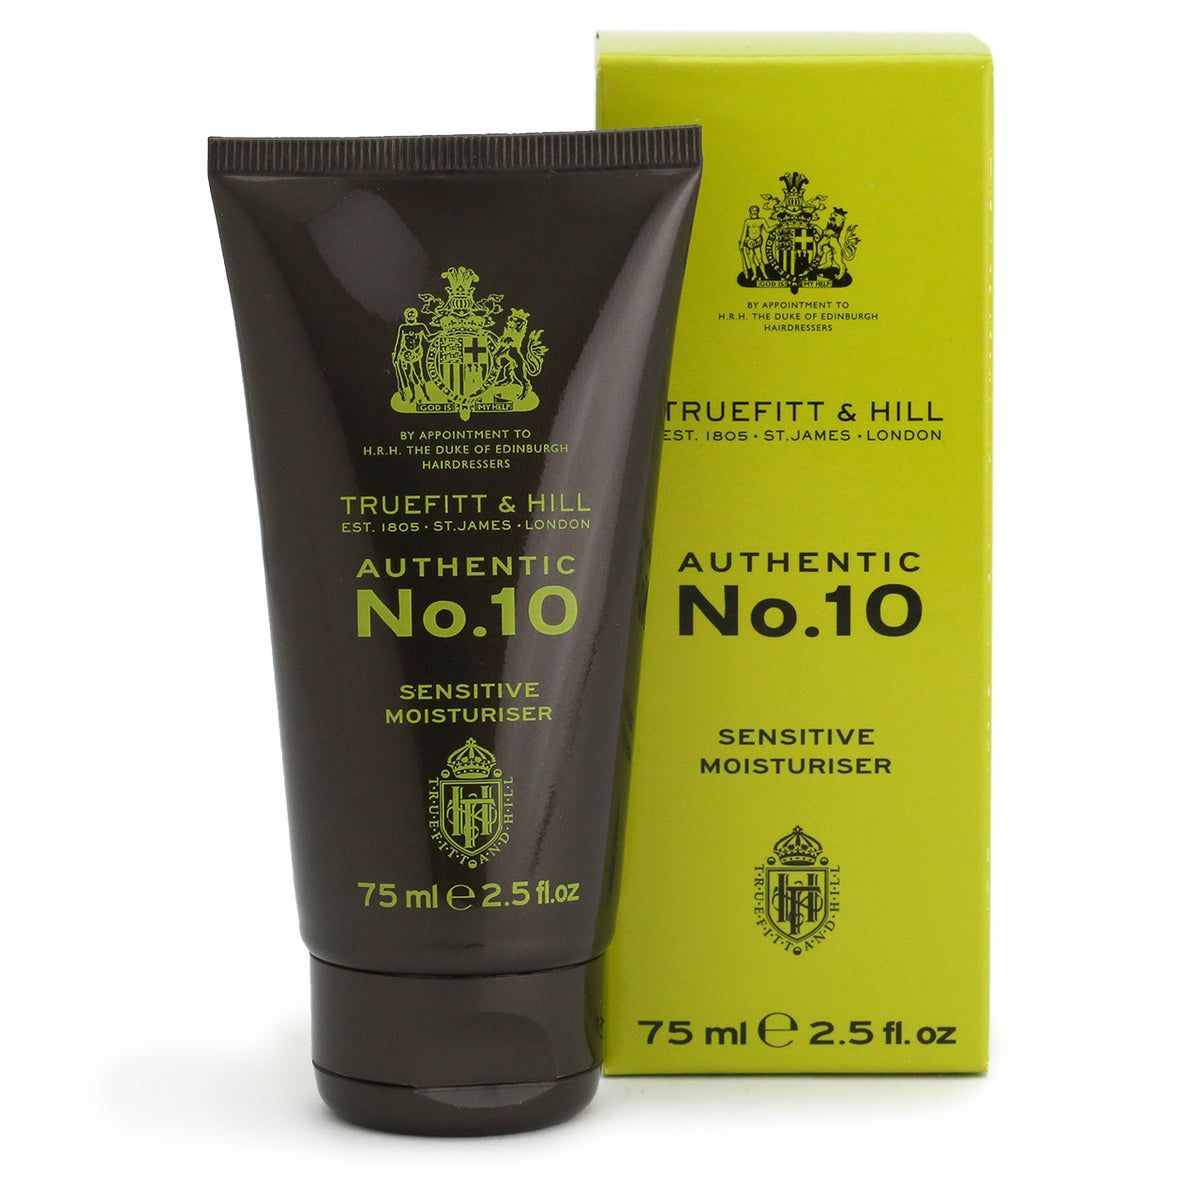 Truefitt & Hill Authentic No.10 Sensitive Moisturiser 75ml